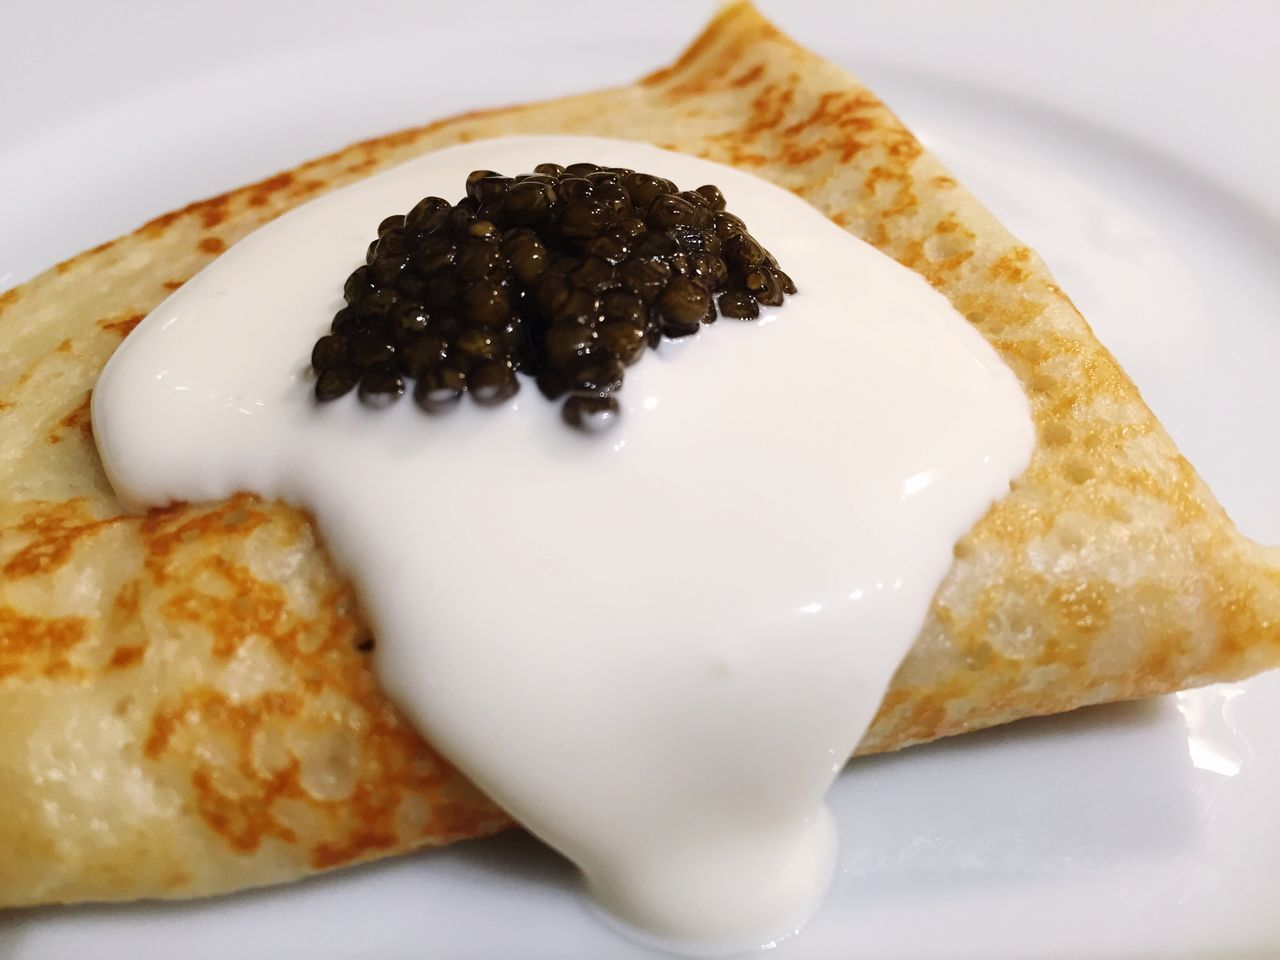 Blinis Caviar EyeEm Selects Food And Drink Food Plate Ready-to-eat Freshness Indulgence Close-up Temptation No People